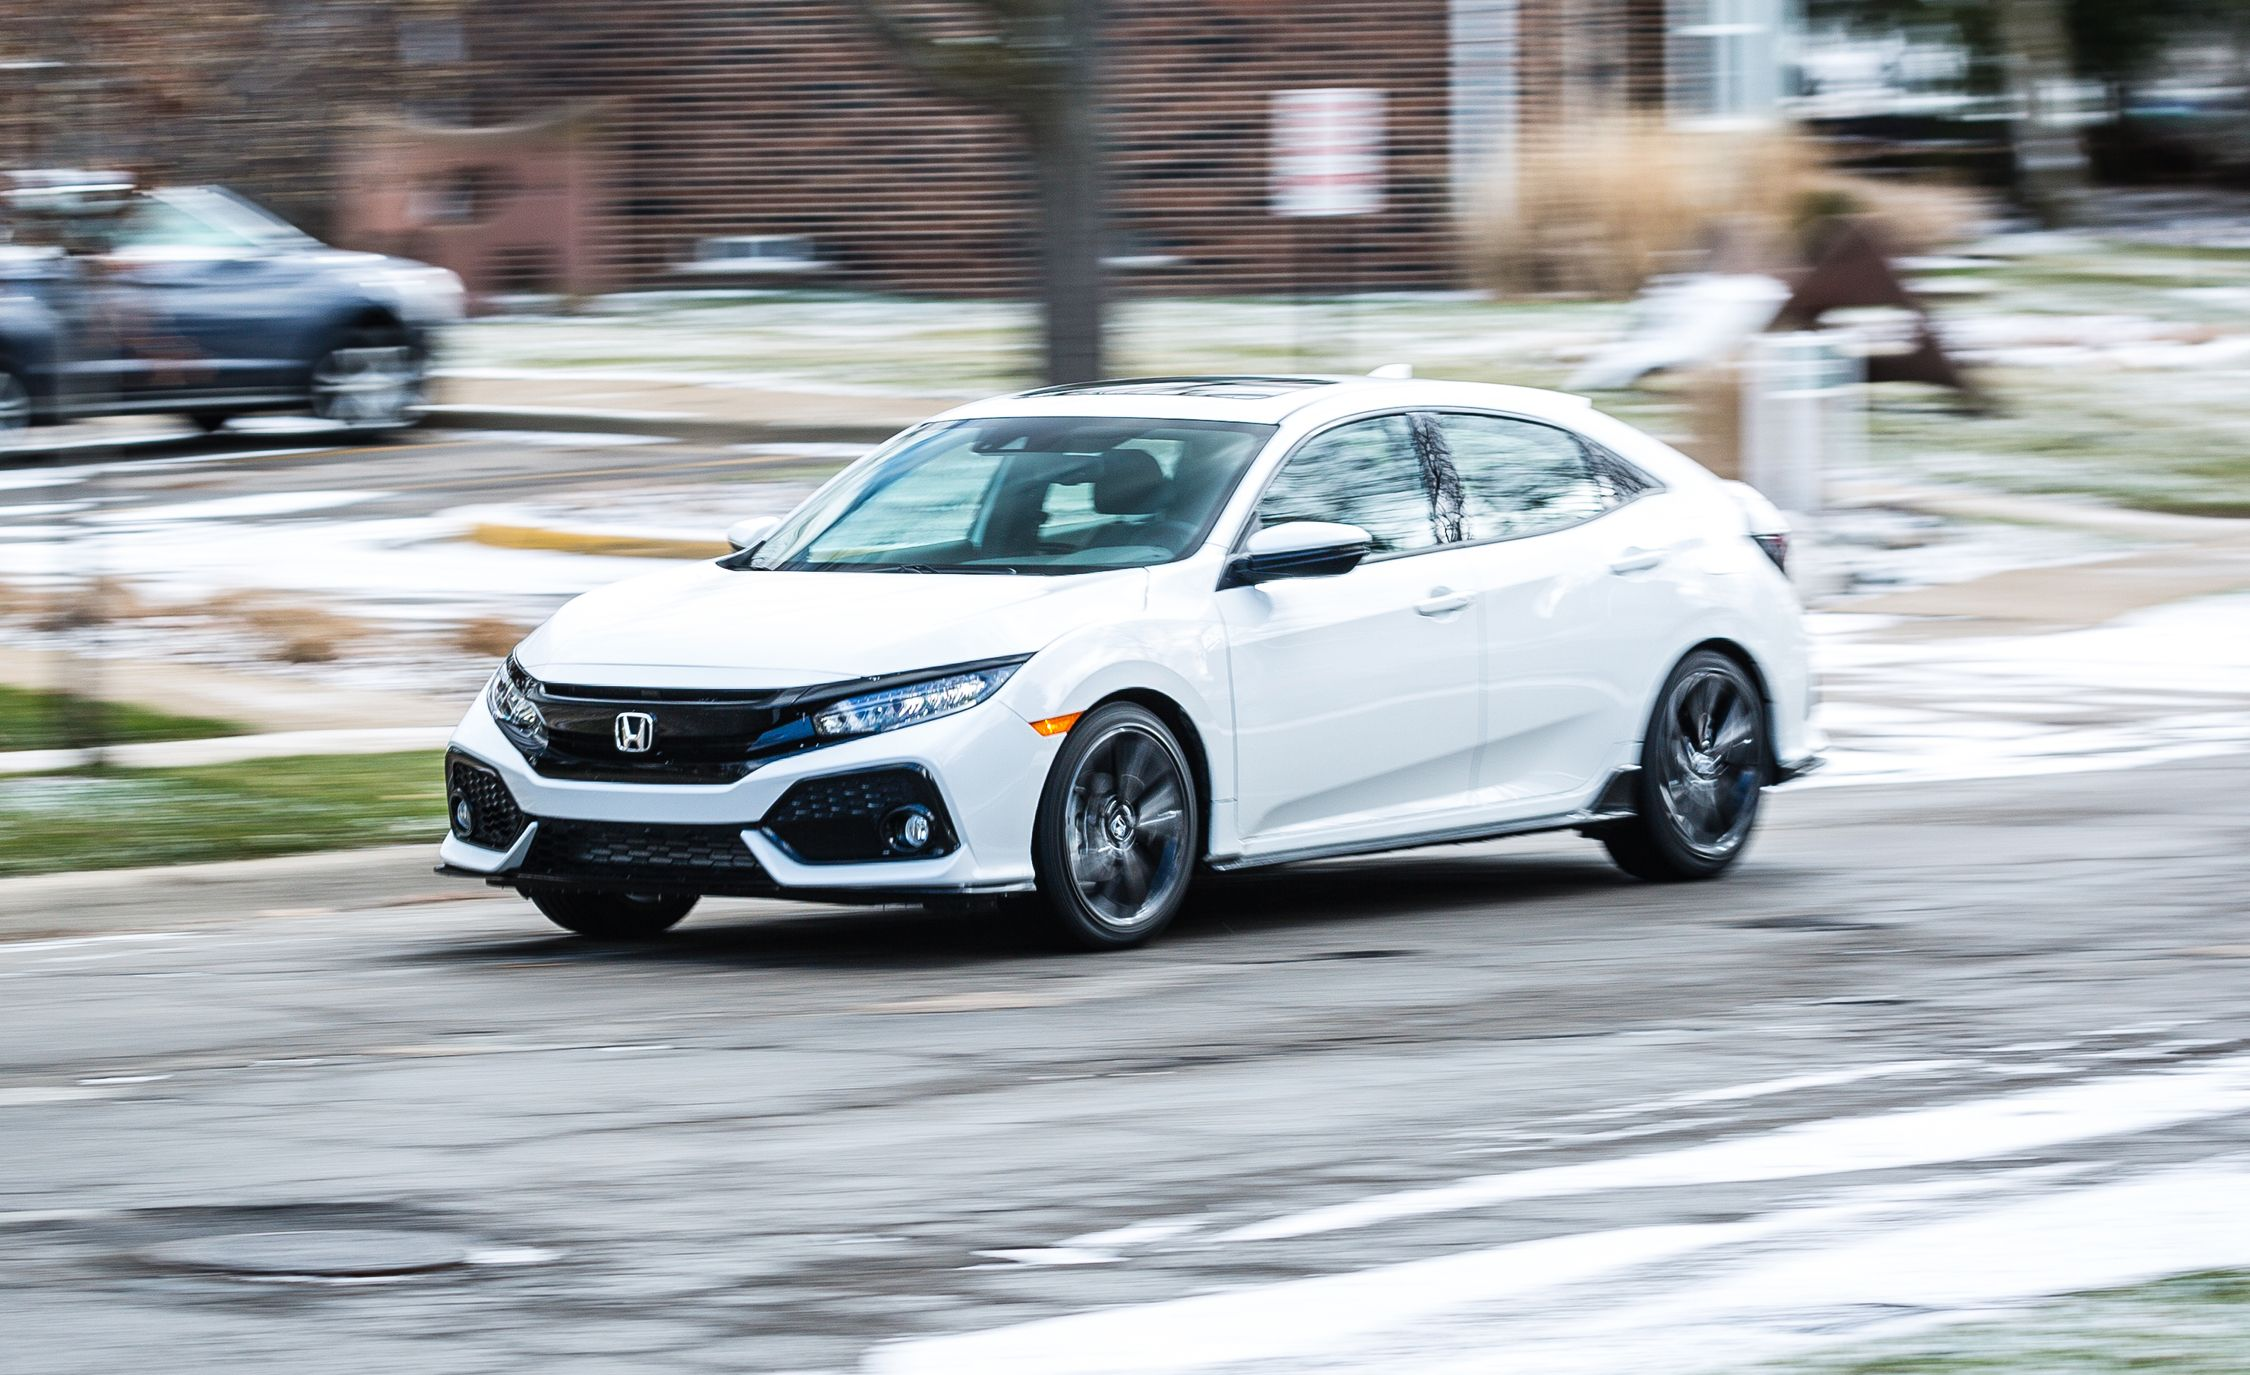 Honda Civic Reviews | Honda Civic Price, Photos, And Specs | Car And Driver